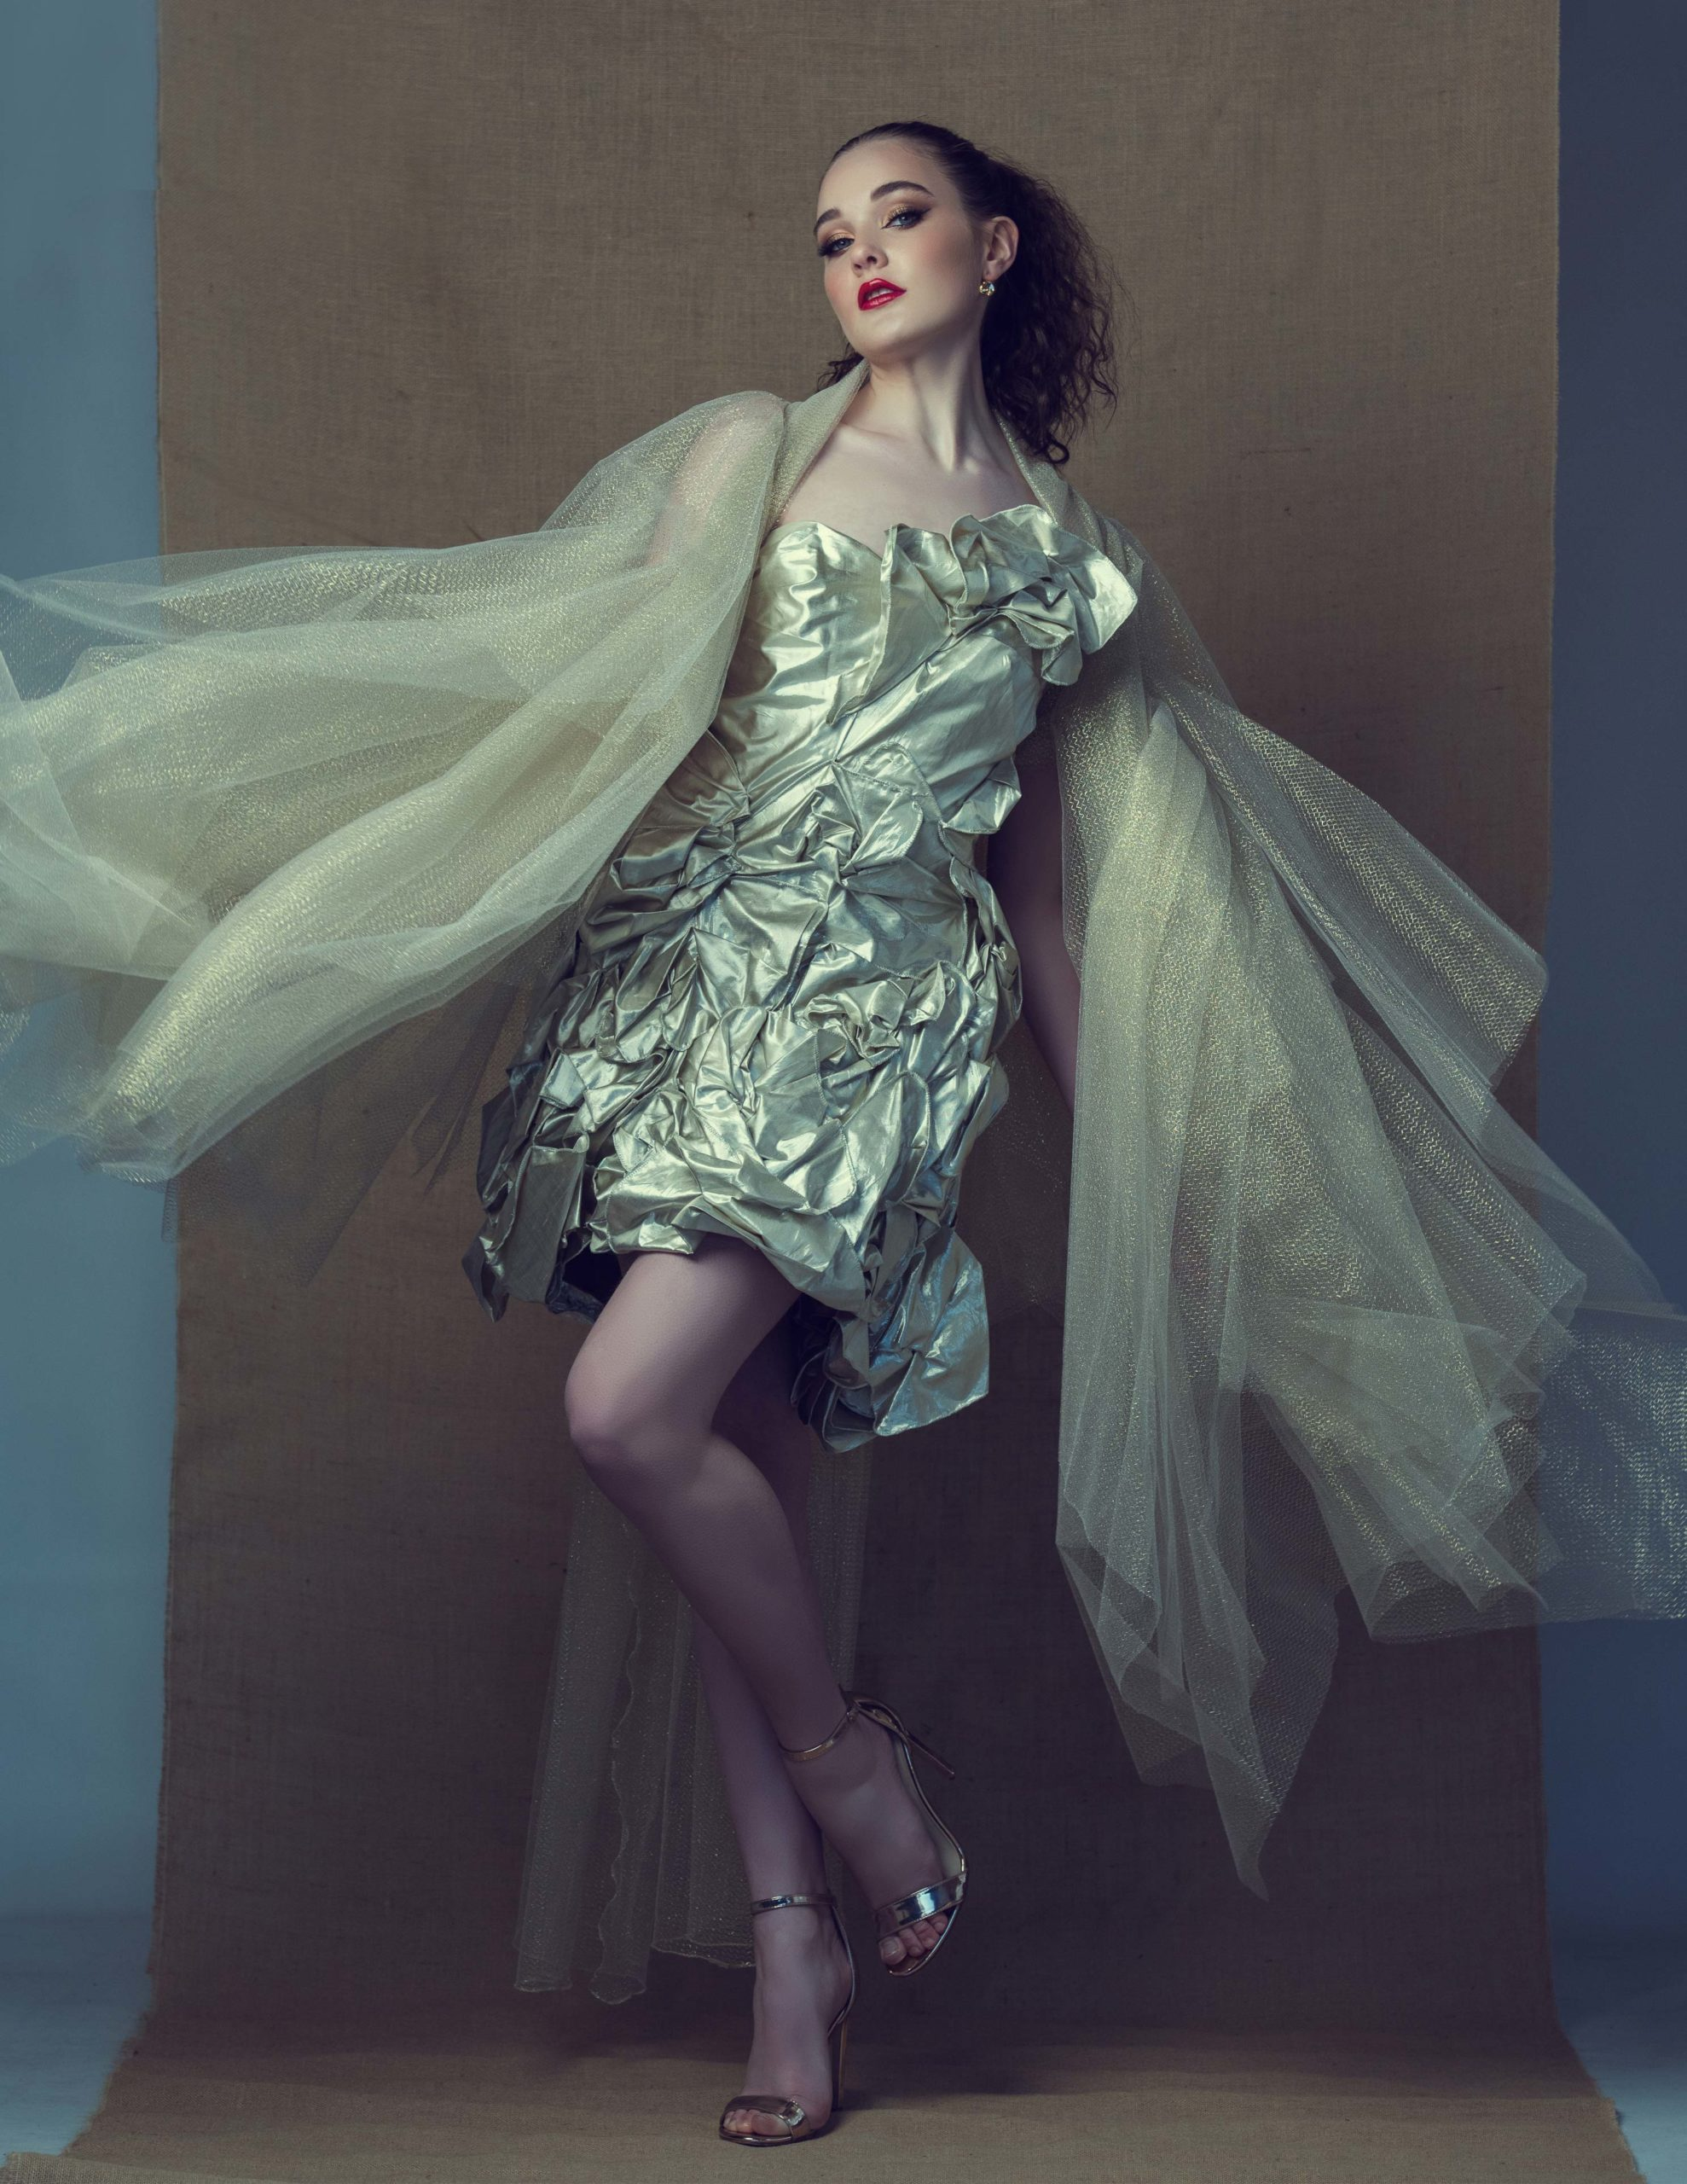 The Sustainability project: floral wonderland gown in silver